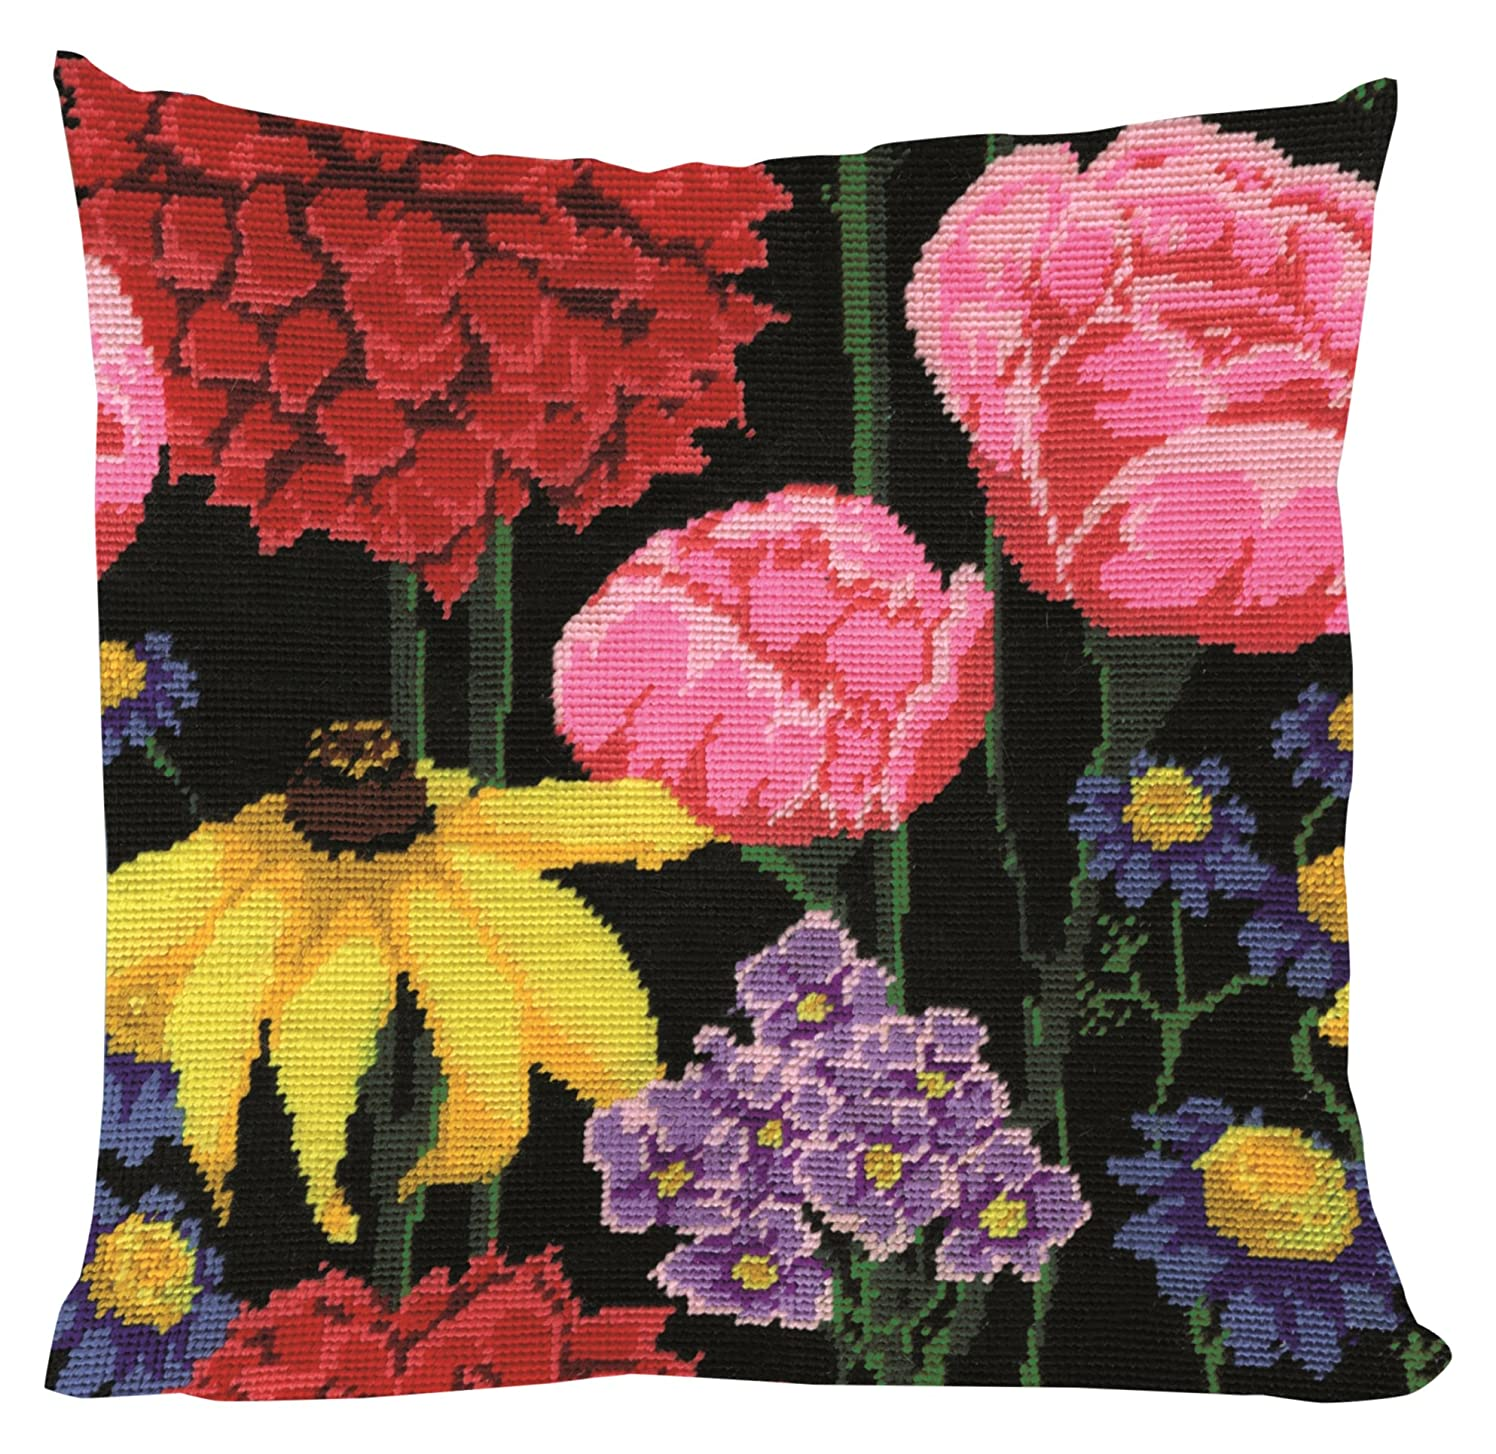 Tobin 2615 Stitched in Acrylic Yarn Midnight Floral Needlepoint Kit, 12